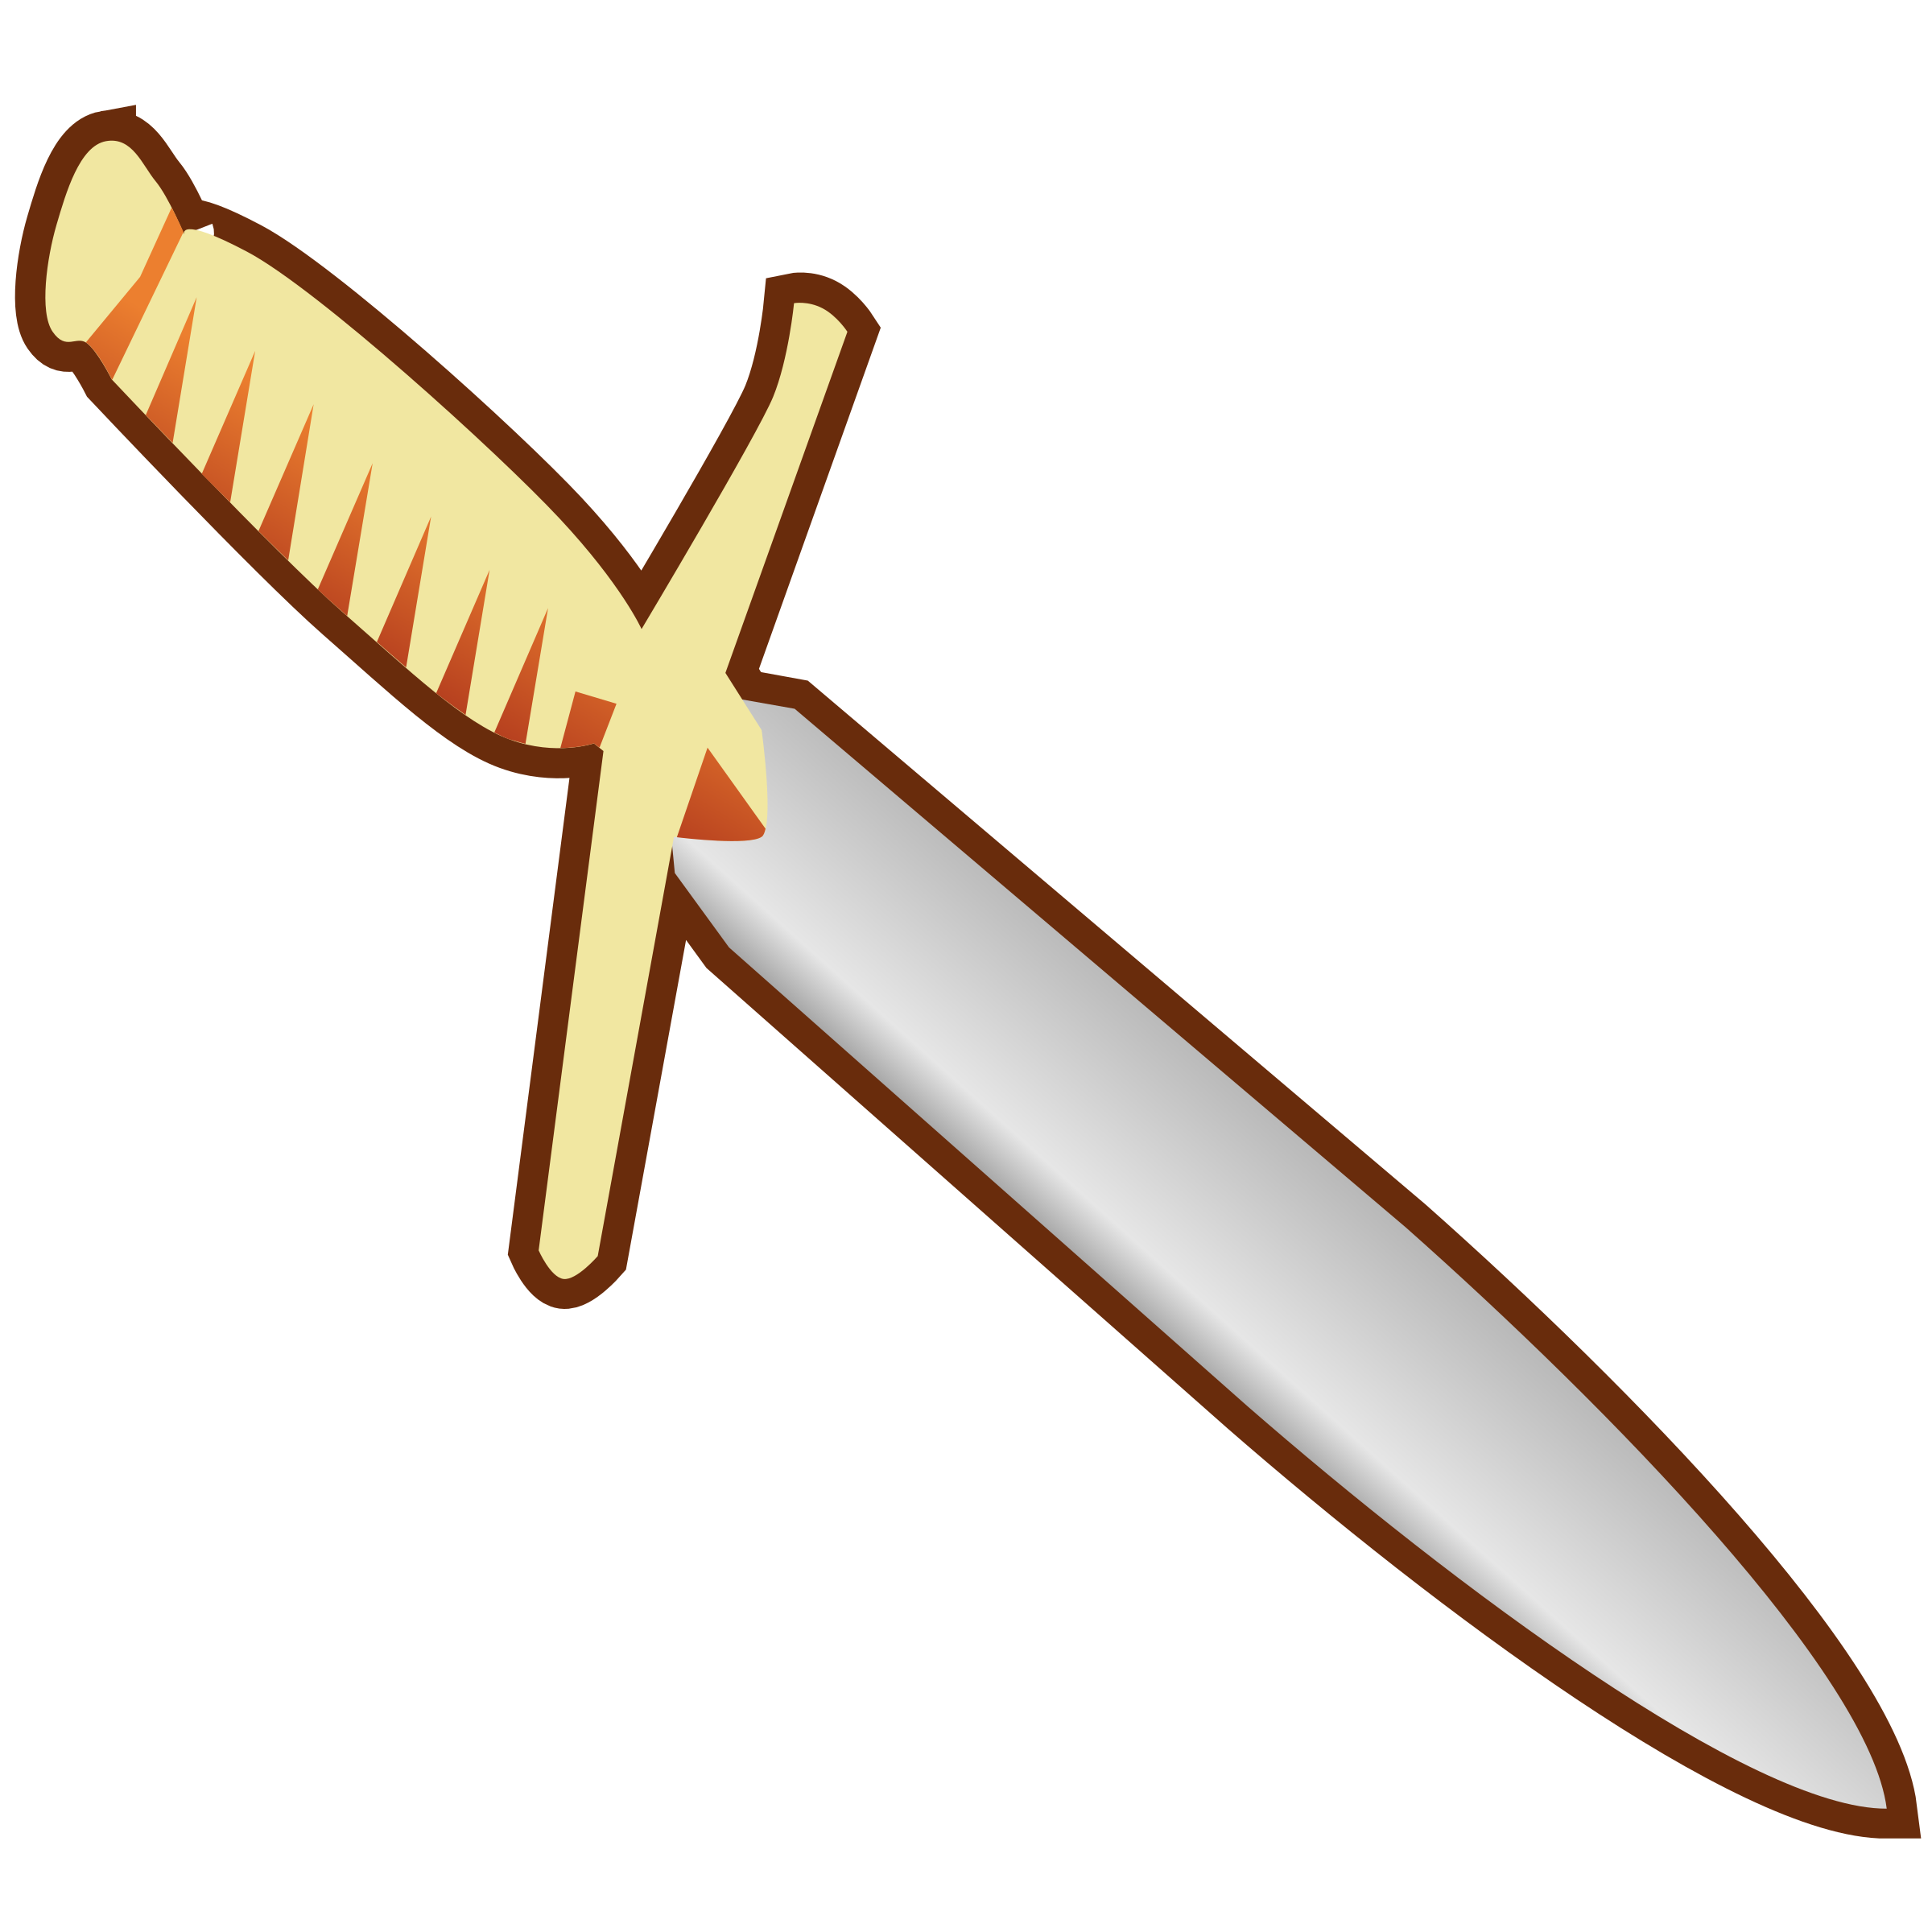 Simple Pagan Knife Icon by qubodup